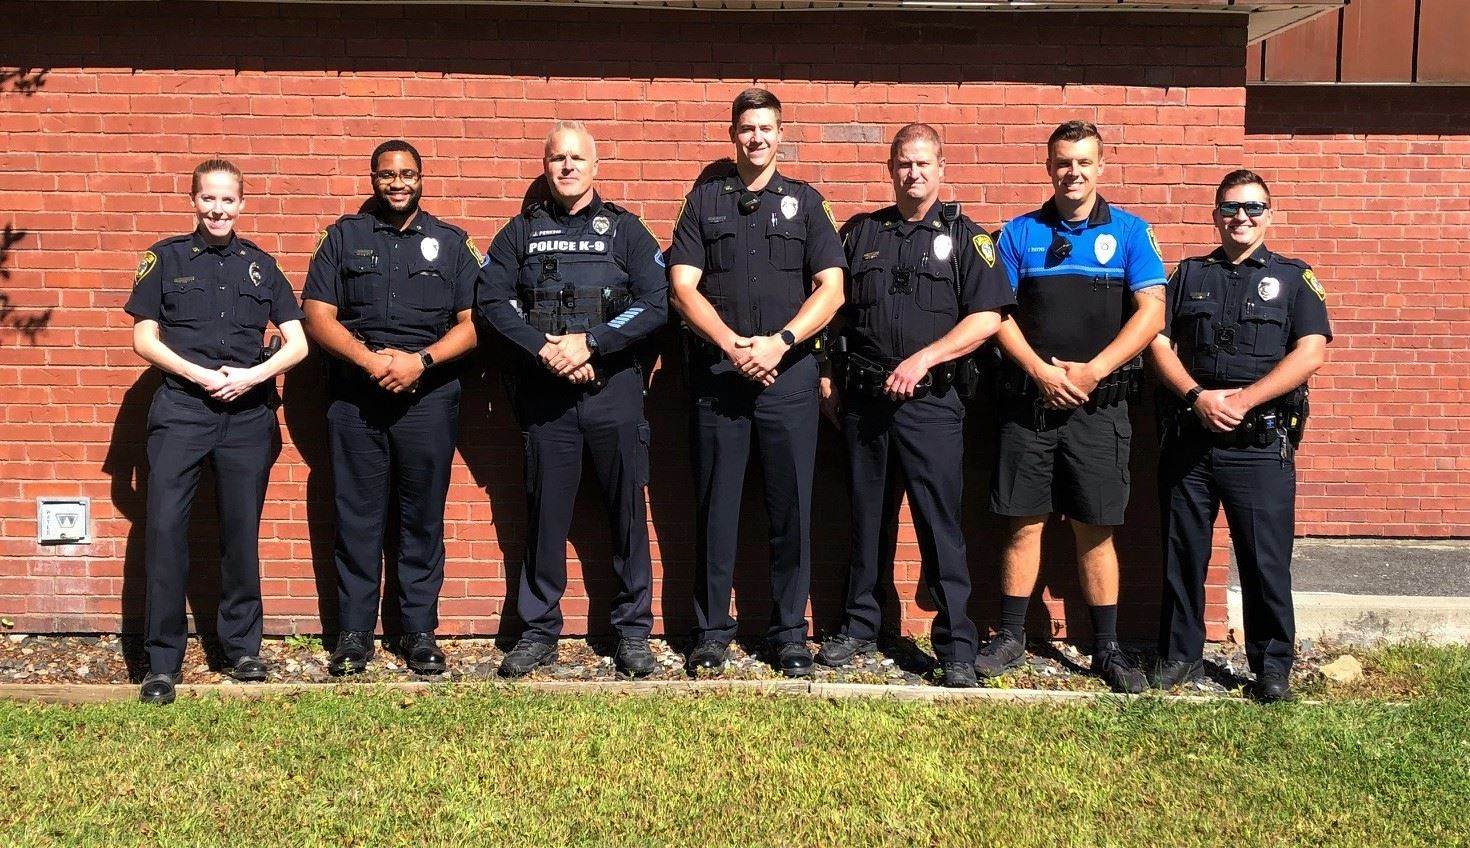 Group photo of Lebanon Officers who completed the most recent CIT Training